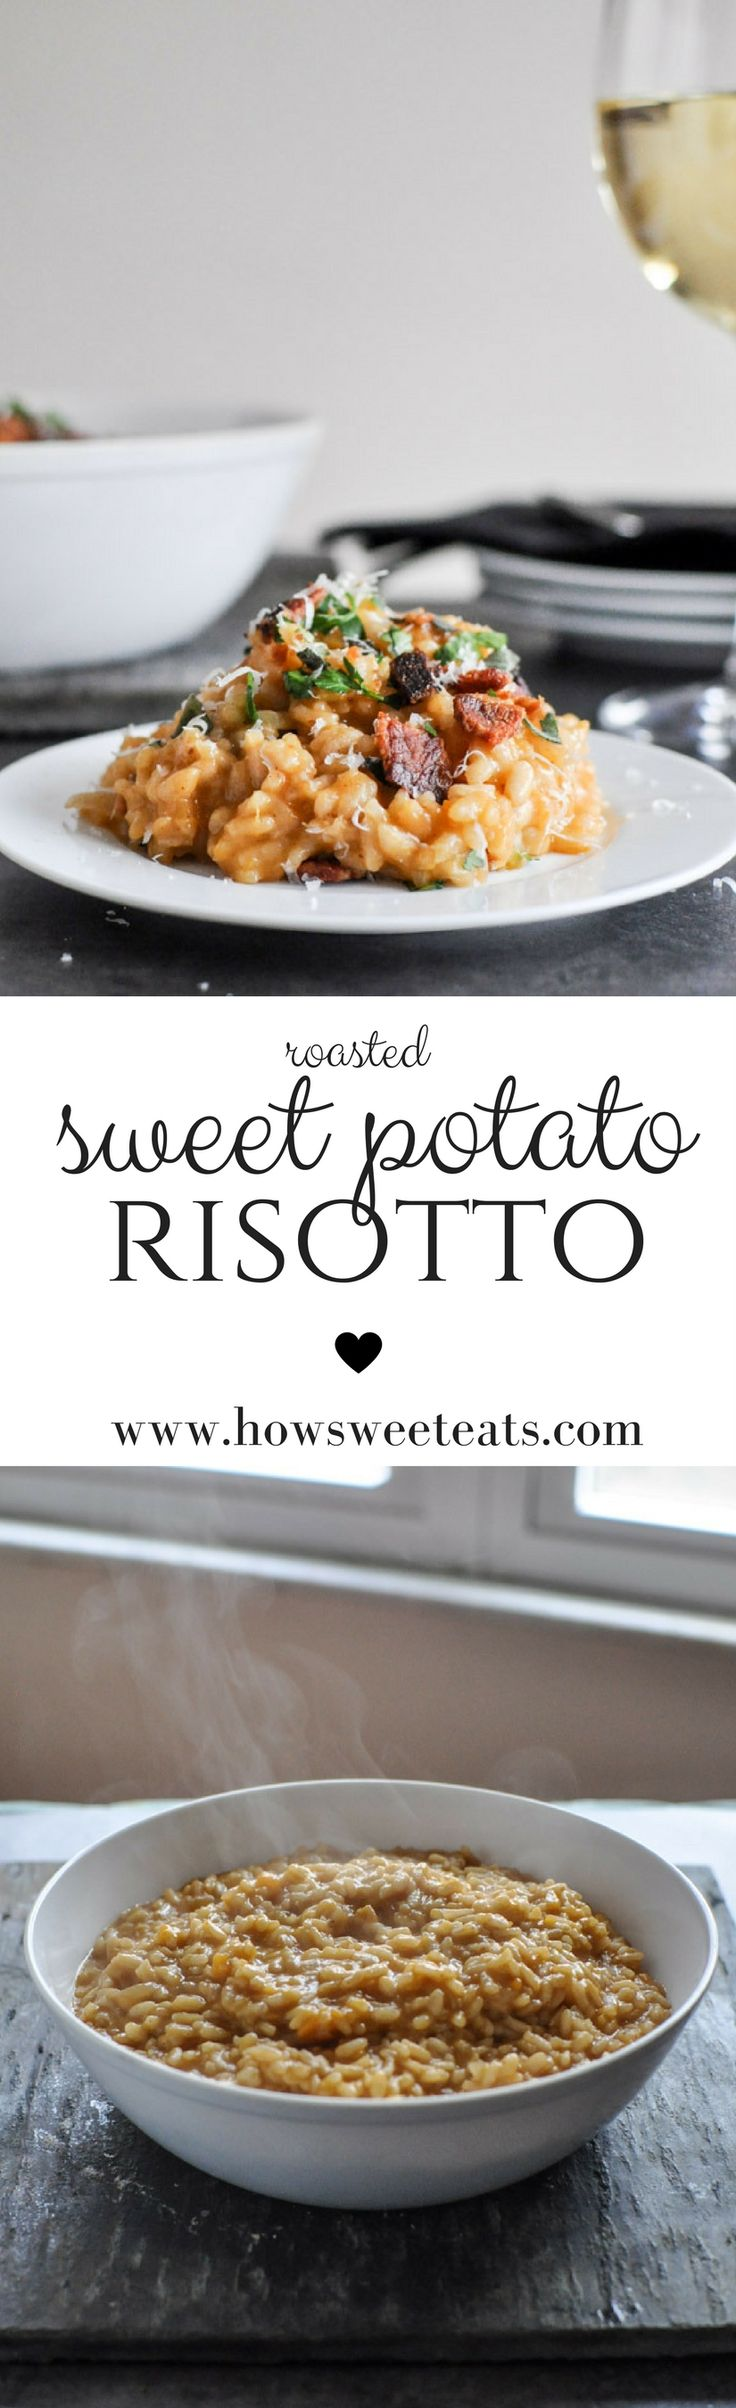 Roasted Sweet Potato Risotto with Brown Butter and Bacon I howsweeteats.com @howsweeteats